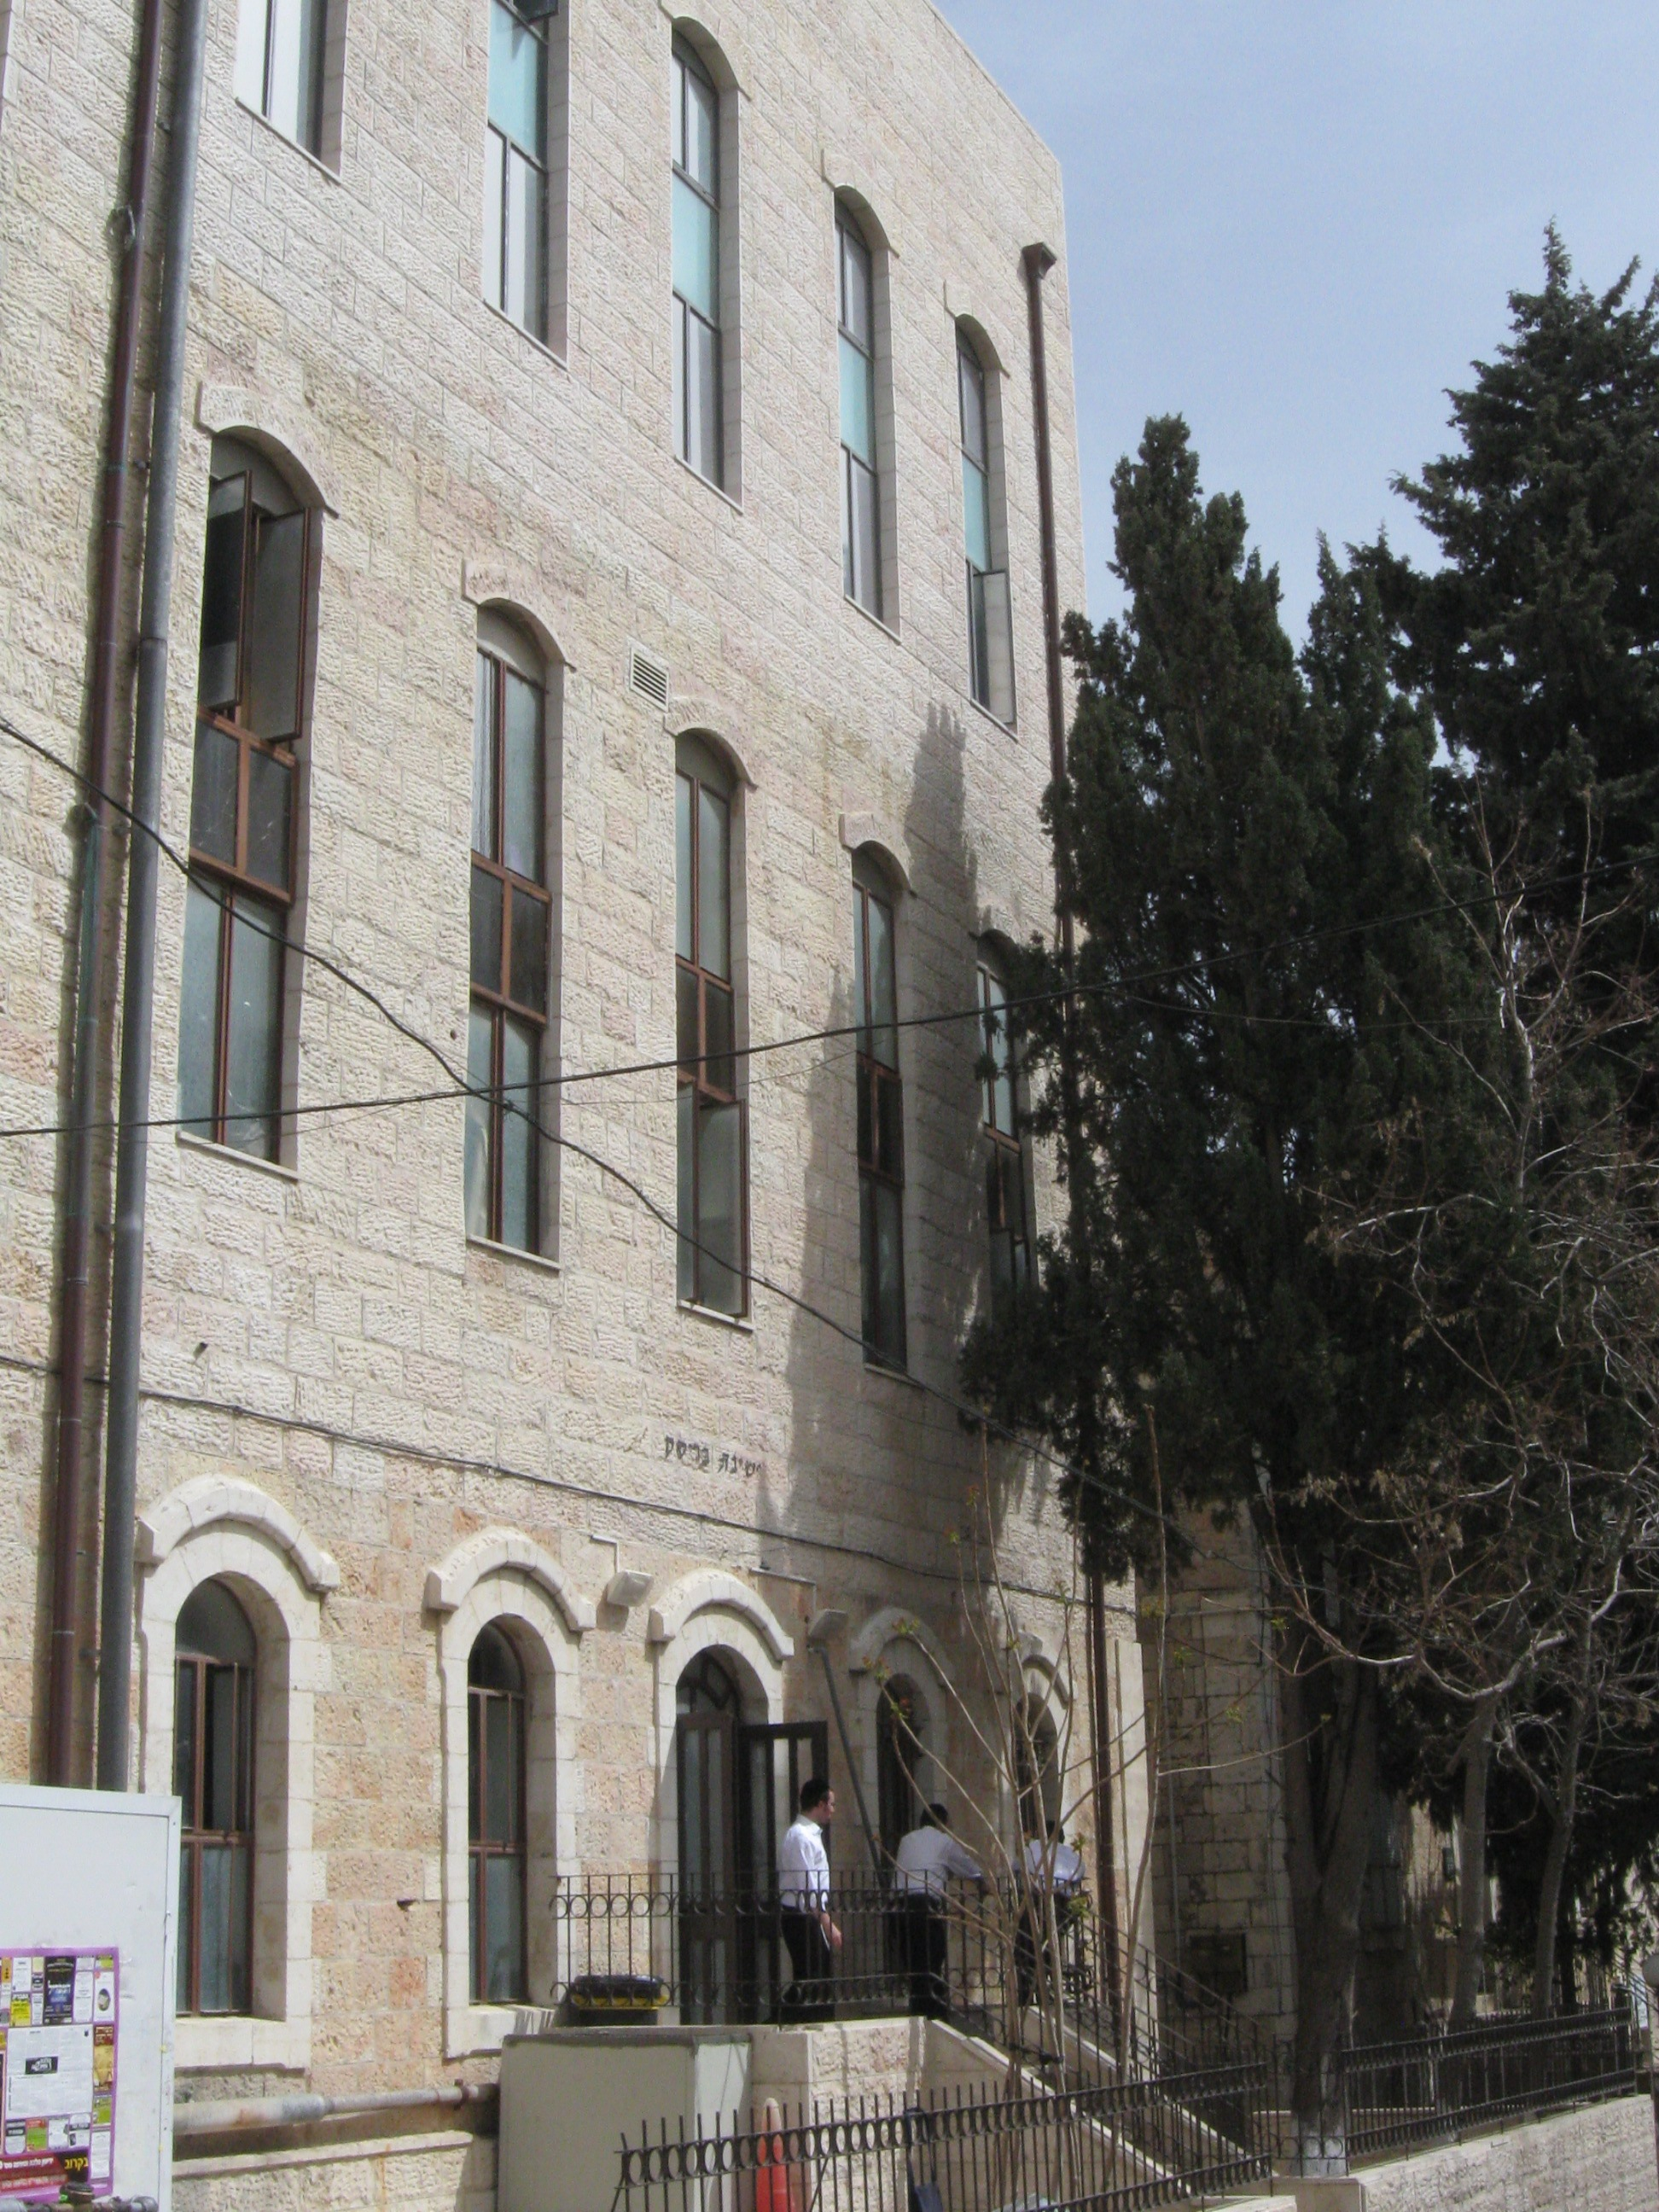 Halachic Analysis: An Apartment Above A Shul